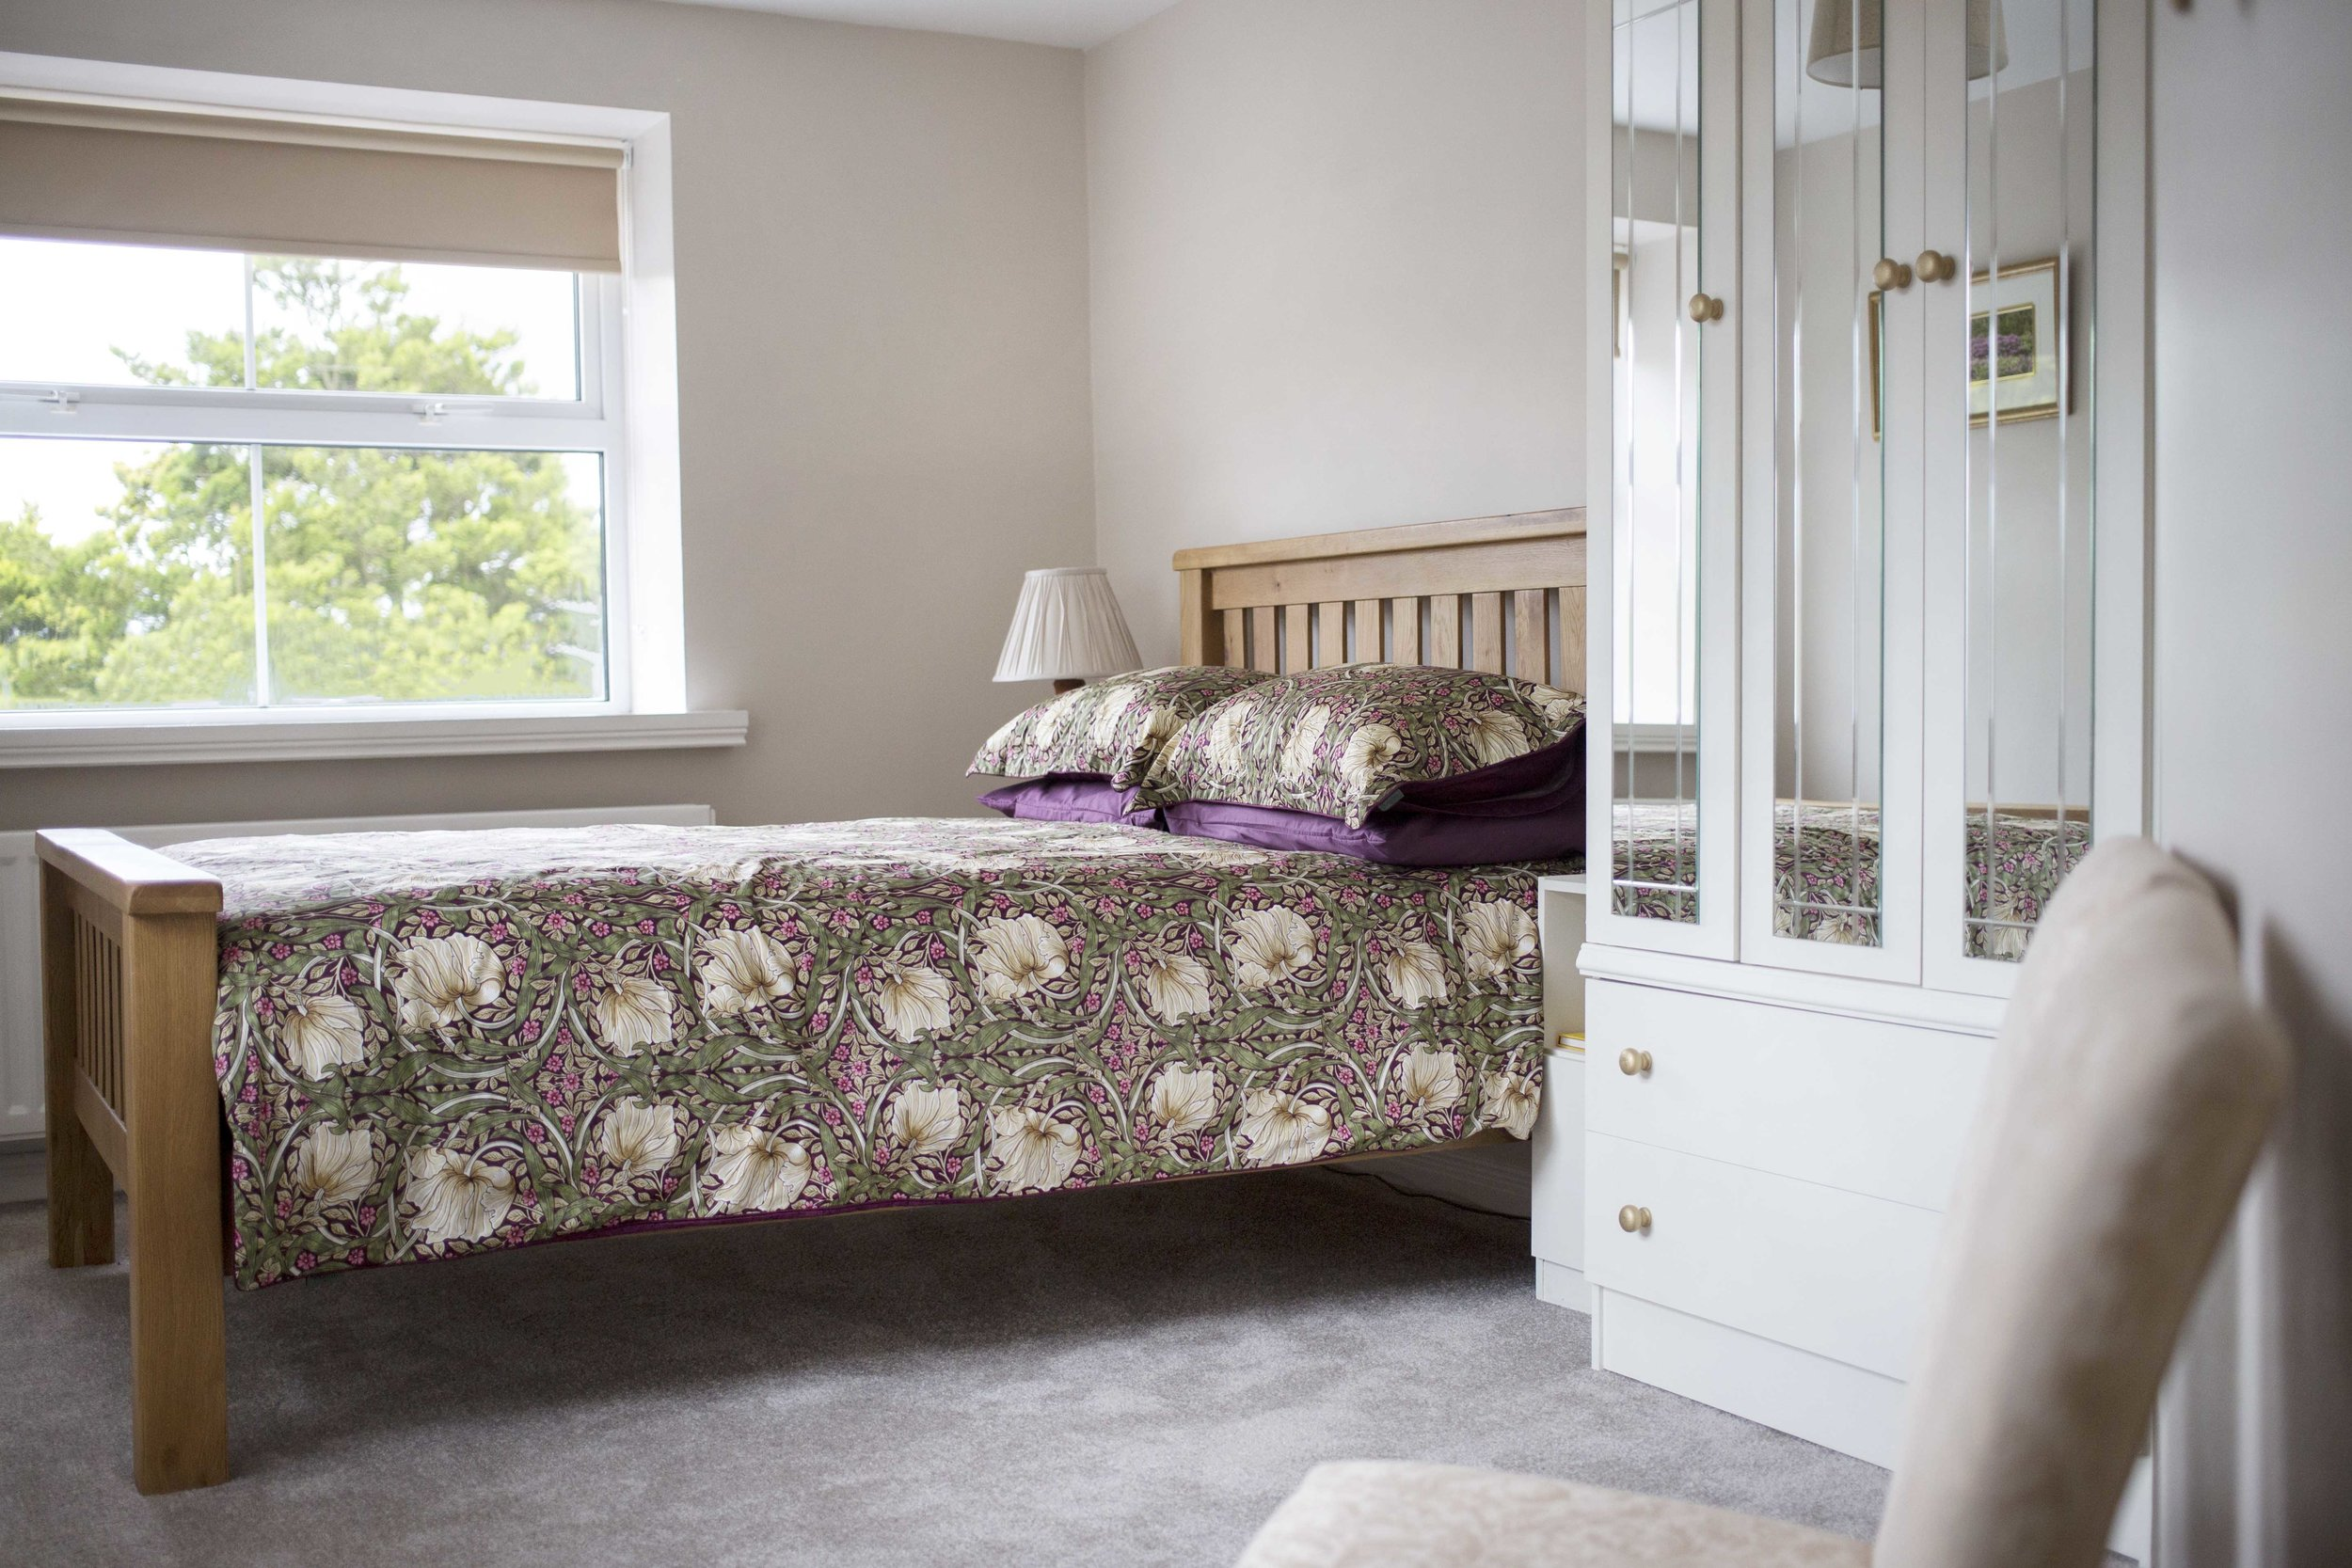 pimpernel & wild rhododendron. room 1 - Located on ground floorDouble solid oak bed & pocket spring mattressSeated area with hospitality trayDisability friendlyStandard ensuite with shower facilityFrom £40 pp based on two sharing.Single supplement - additional £20 applies.